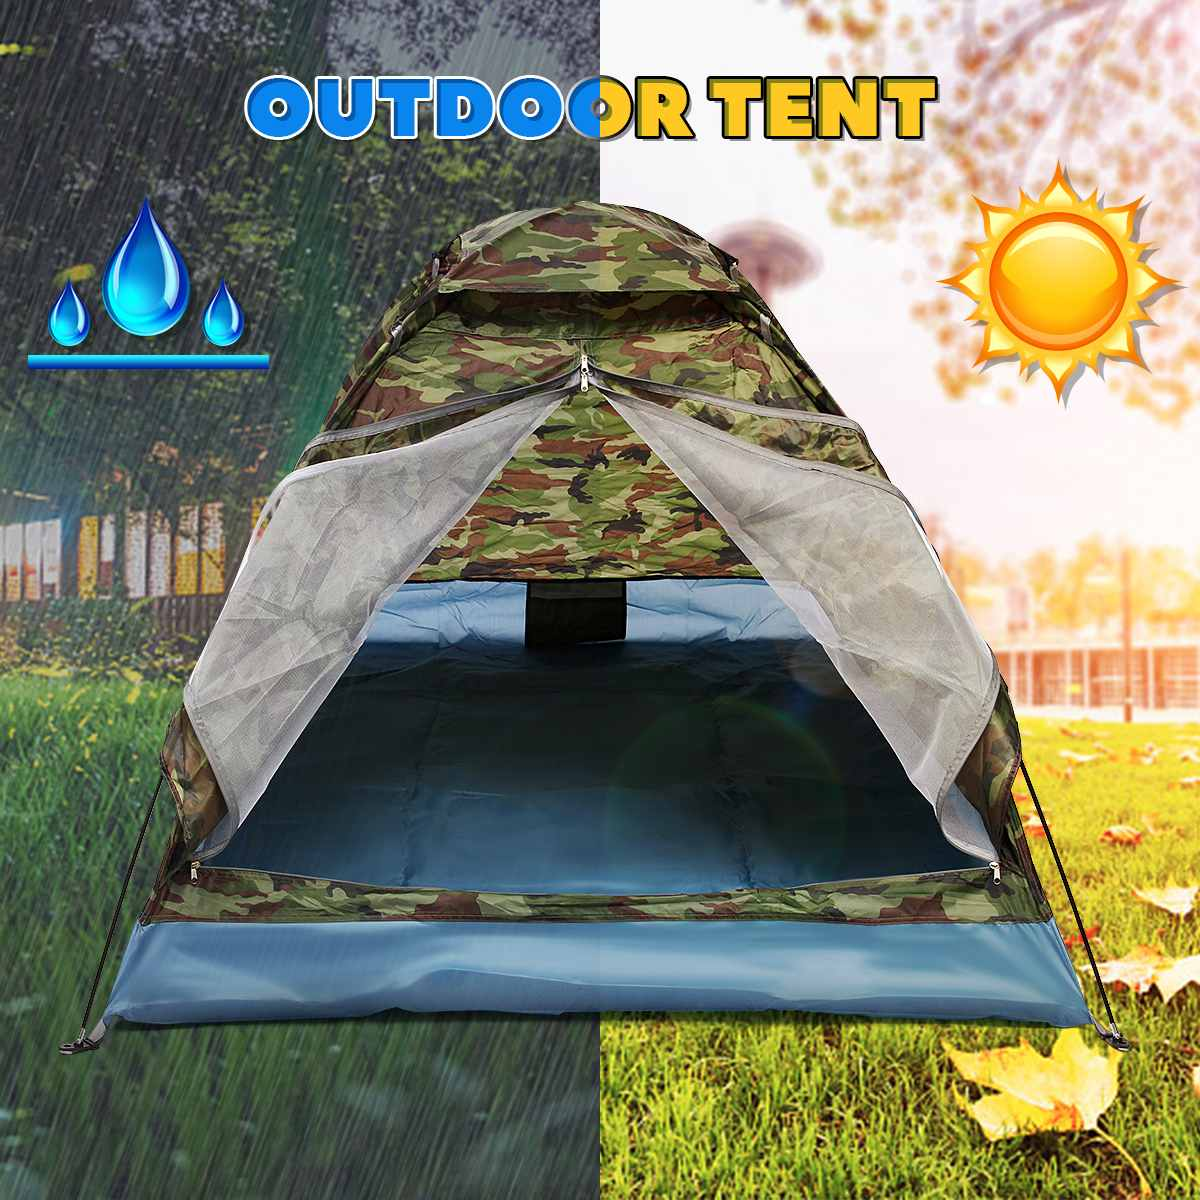 200*140*110cm  Outdoor 2 Person waterproof Sunscreen Double Tent Folding Camping Hiking Camouflage Waterproof w/ Bag200*140*110cm  Outdoor 2 Person waterproof Sunscreen Double Tent Folding Camping Hiking Camouflage Waterproof w/ Bag